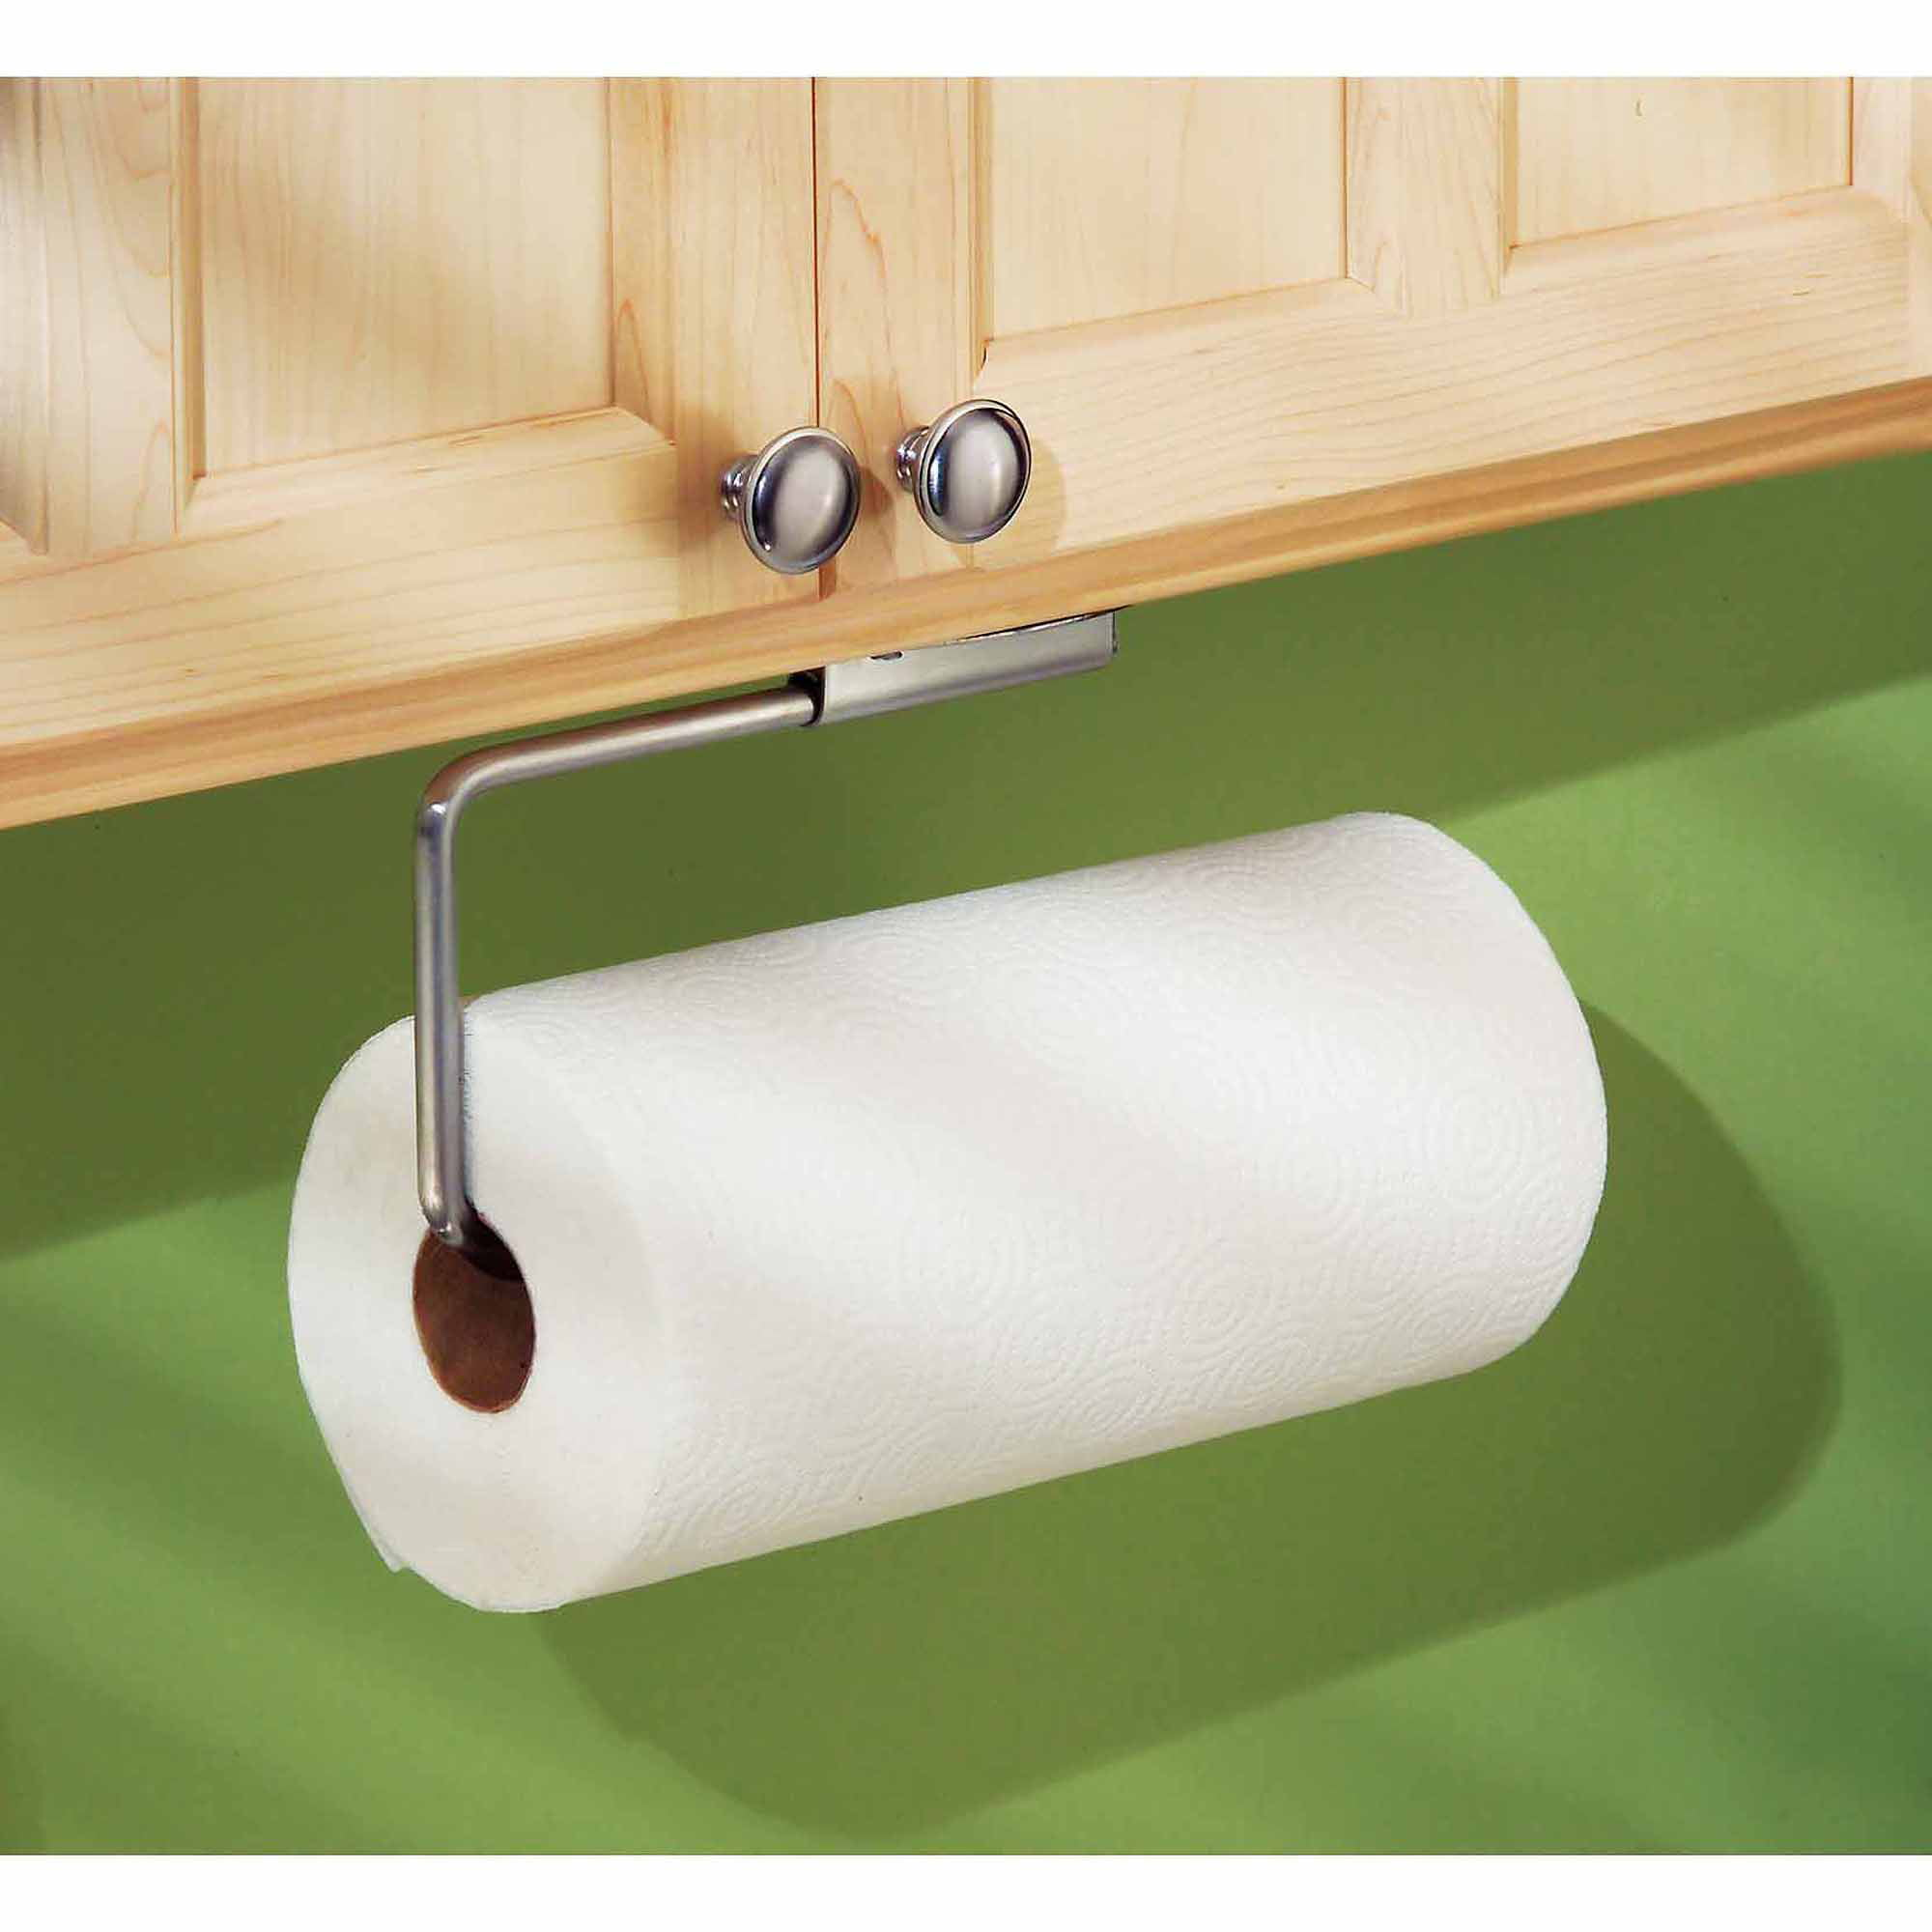 Interdesign Forma Swivel Paper Towel Holder For Kitchen Wall Mount Under Cabinet Brushed